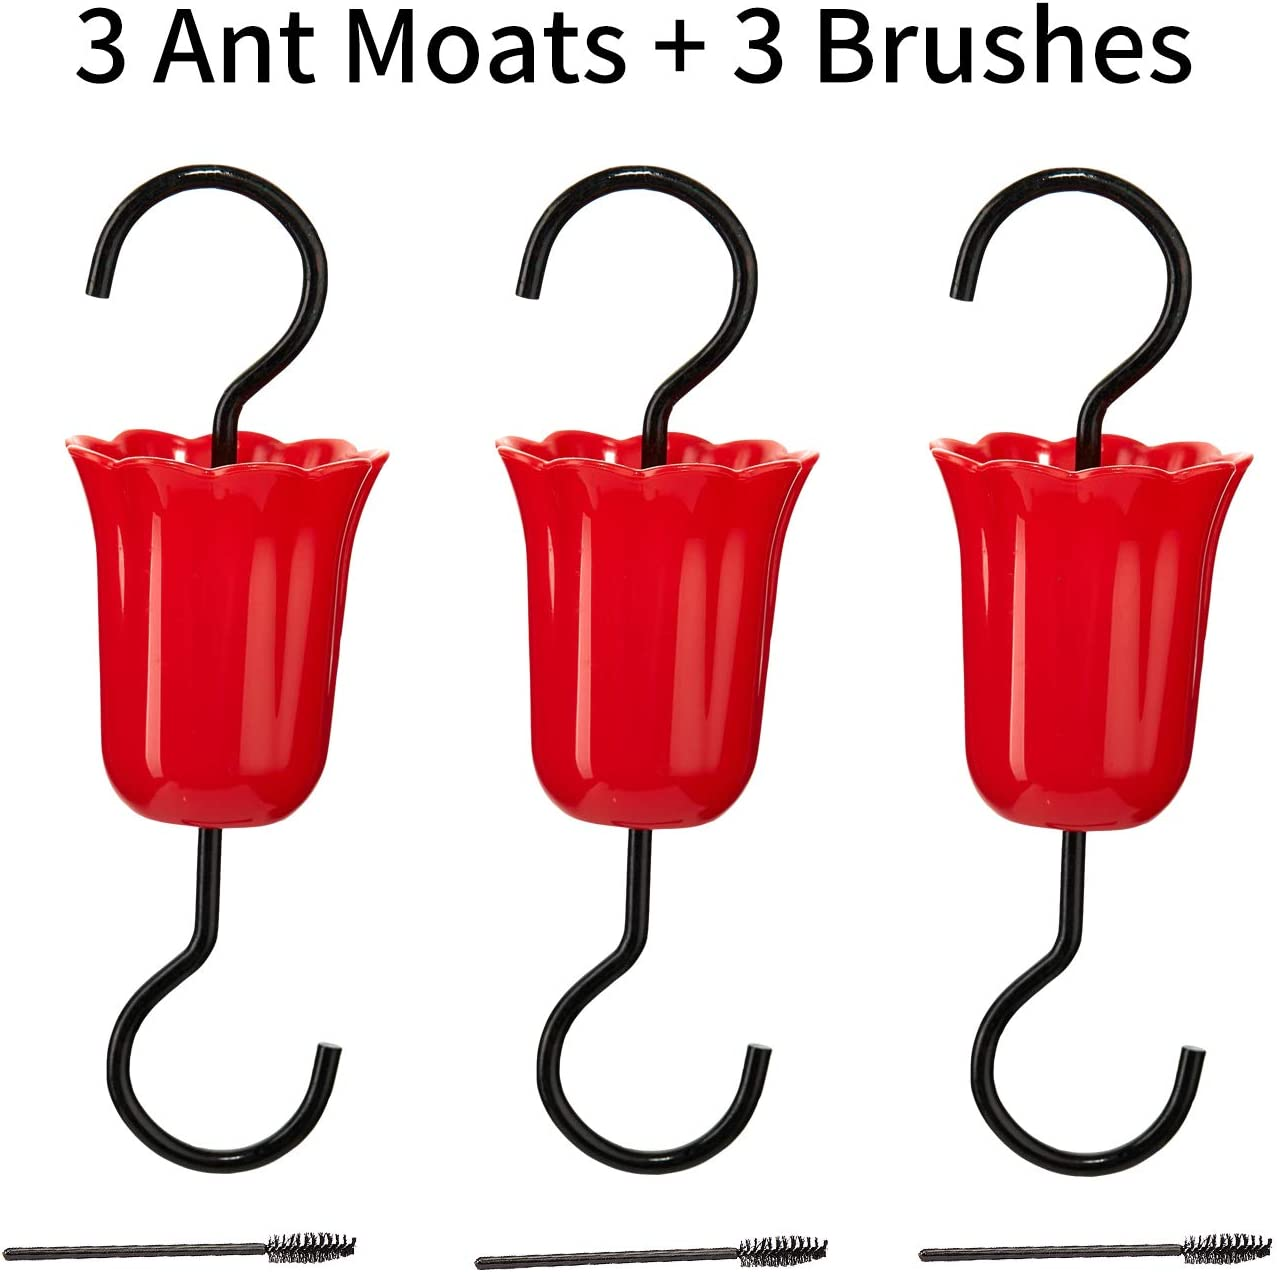 ShinyArt Flower Ant Moat for Hummingbird Feeder- 3 Red Ant Moats and 3 Brushes, Authentic Trap Gets Rid of Ants Fast & 100% Safe and All Natural for Your Nectar Feeder